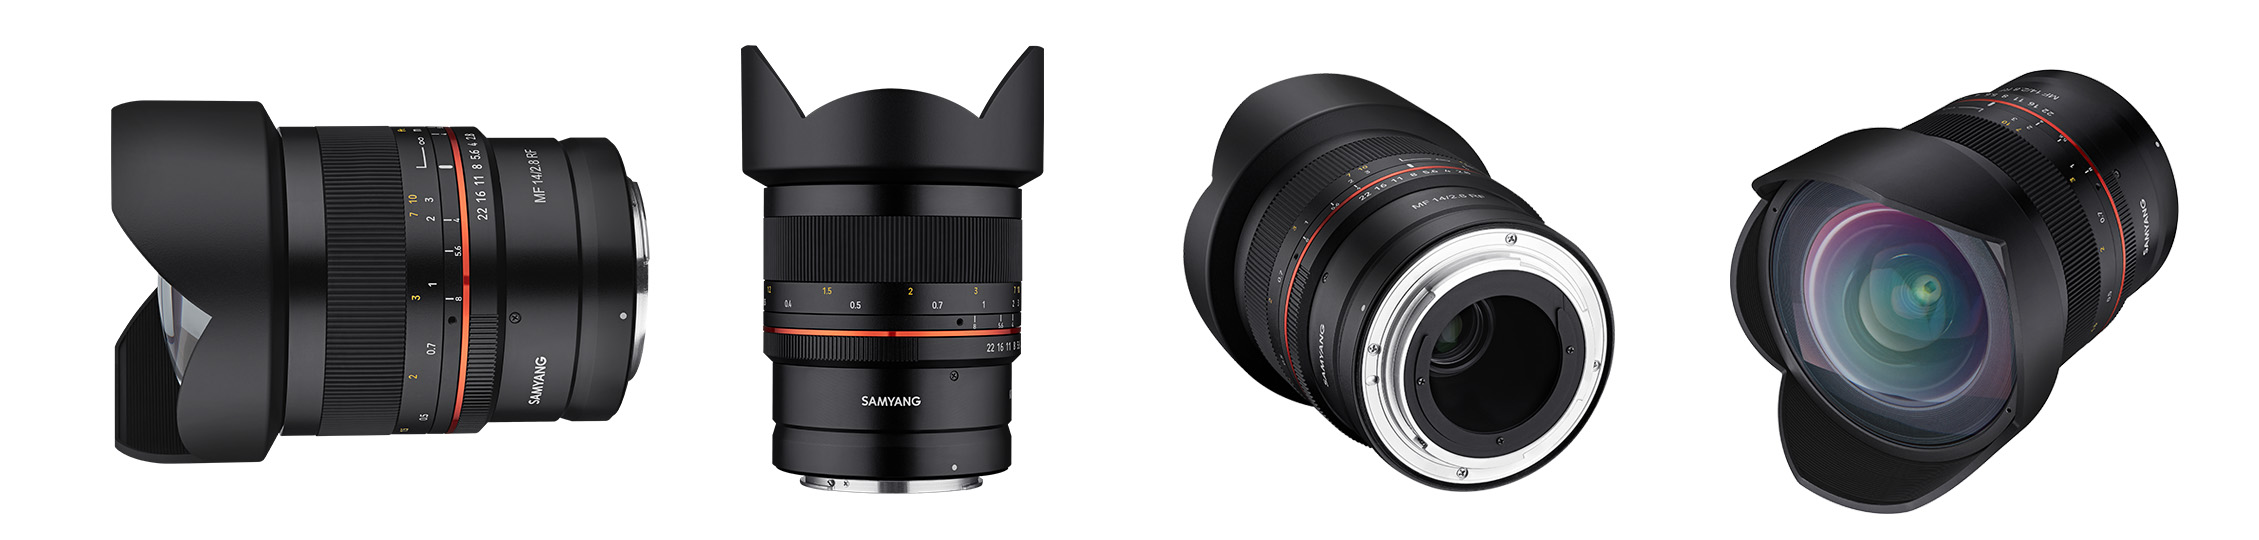 Samyang Announces First Canon RF Mount Lenses - 14mm f/2 8